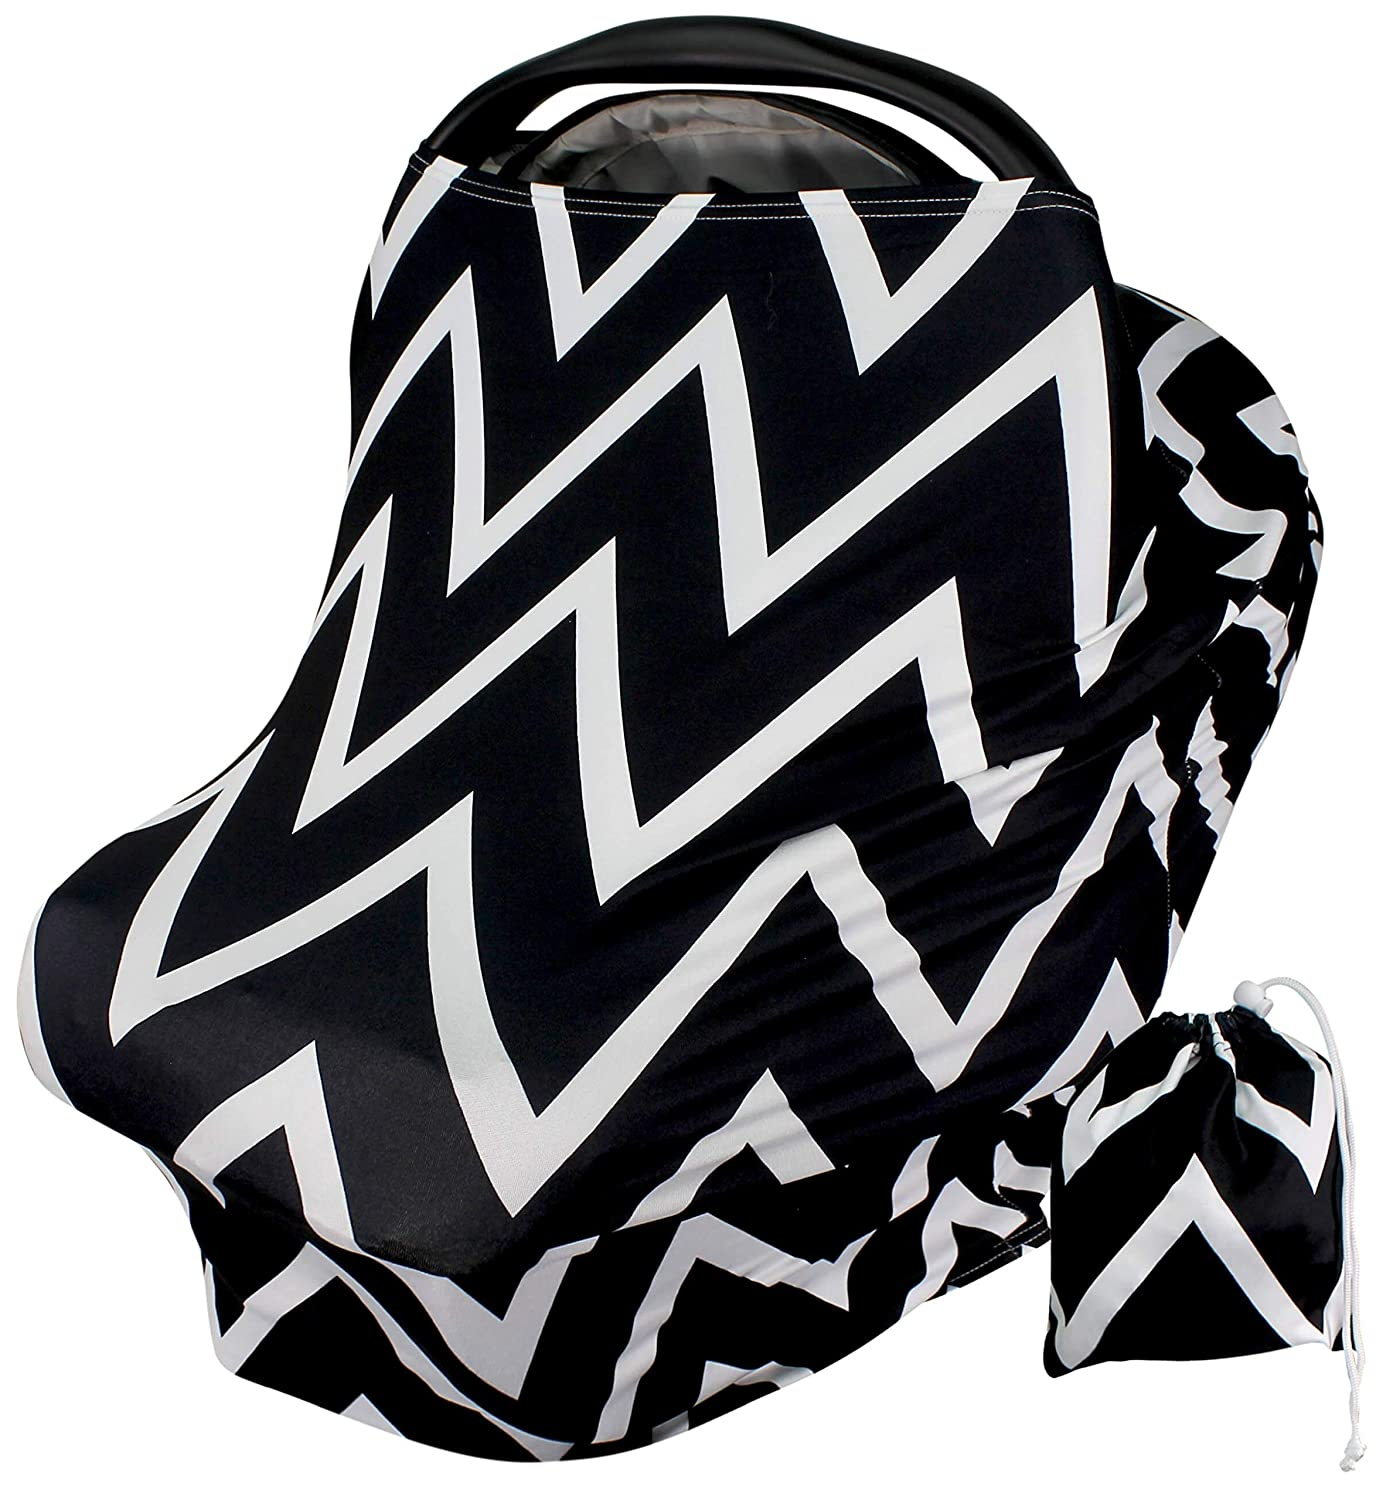 Car Seat Covers for Babies - Large Black and White Zig Zag